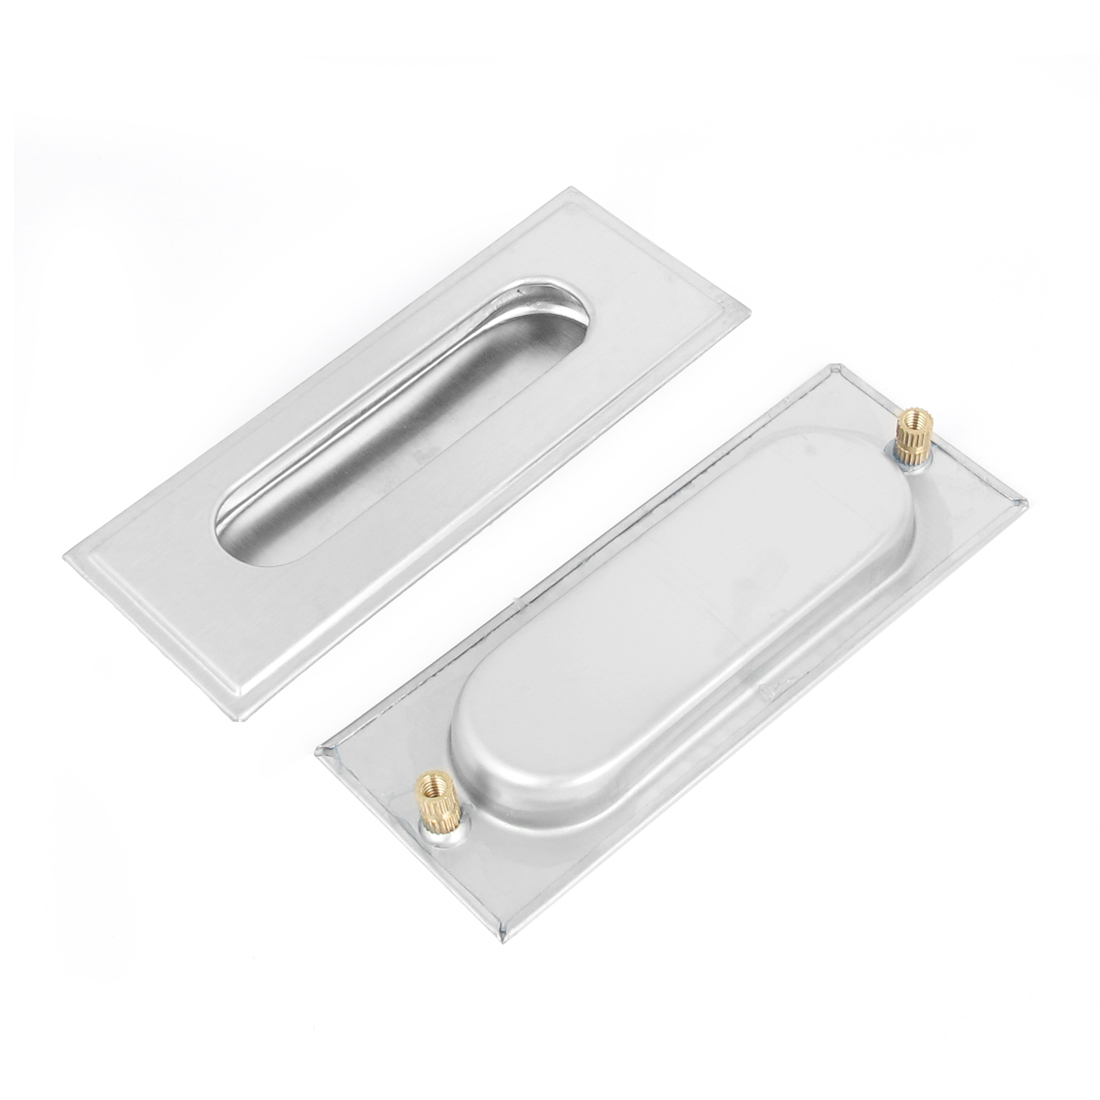 2pcs Zinc Alloy Rectangle Drawer Door Flush Recessed Pull Handle 110mm x 40mm